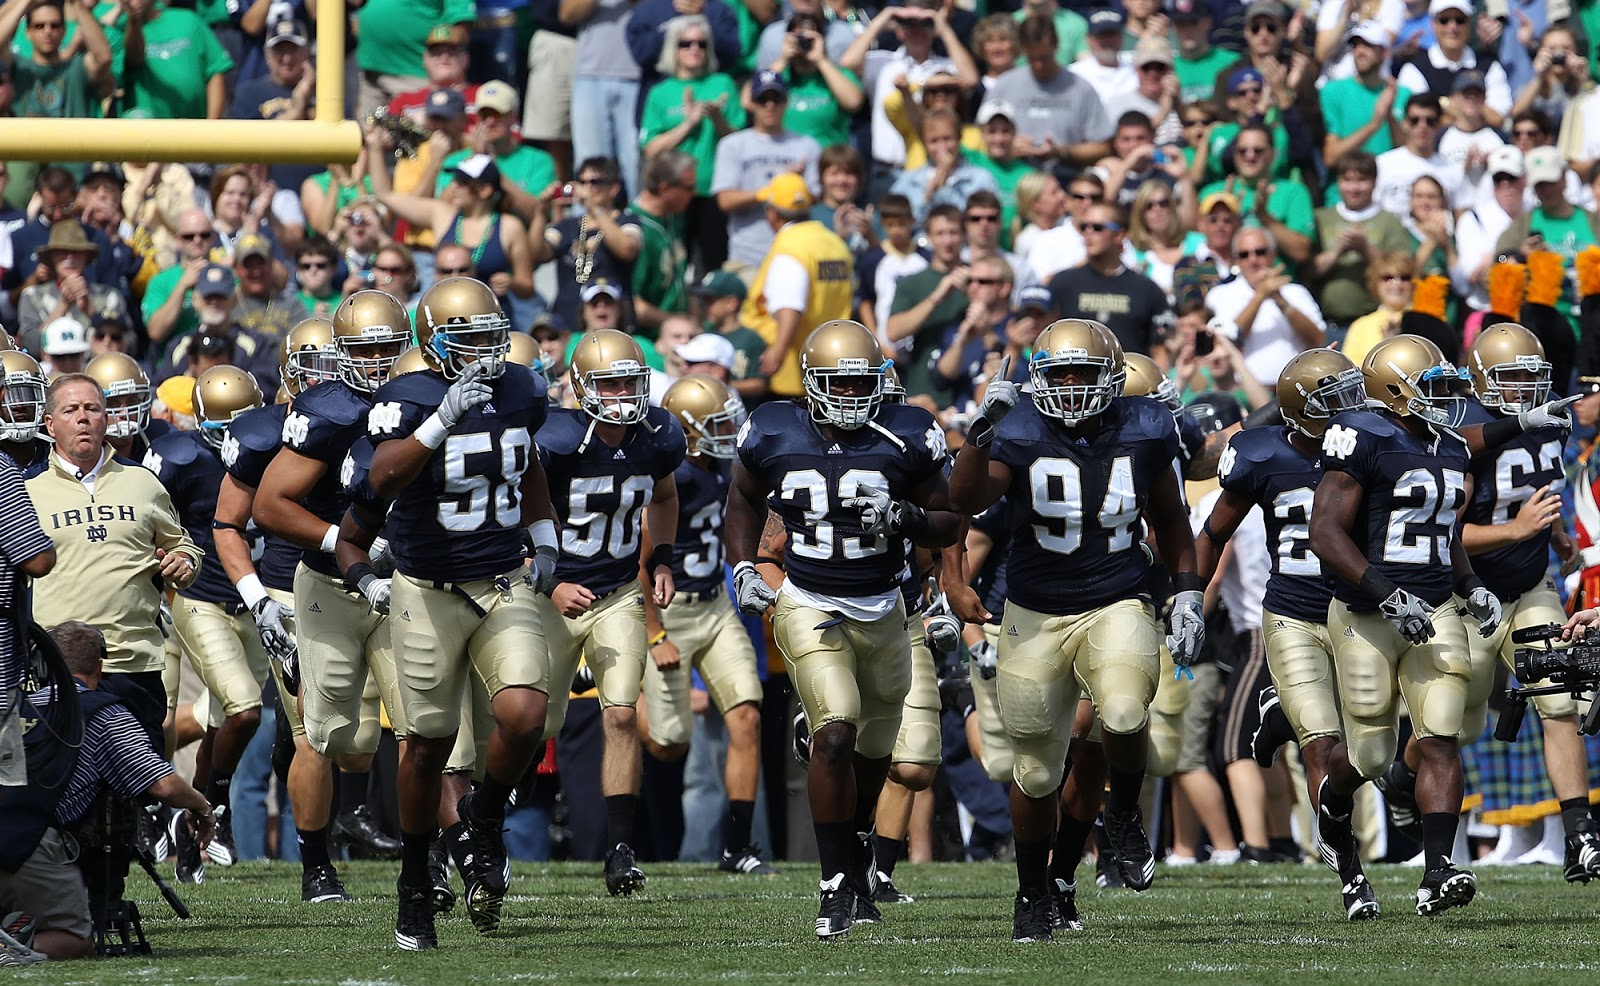 Notre Dame Football Wallpapers Hd Wallpapers 1600x986